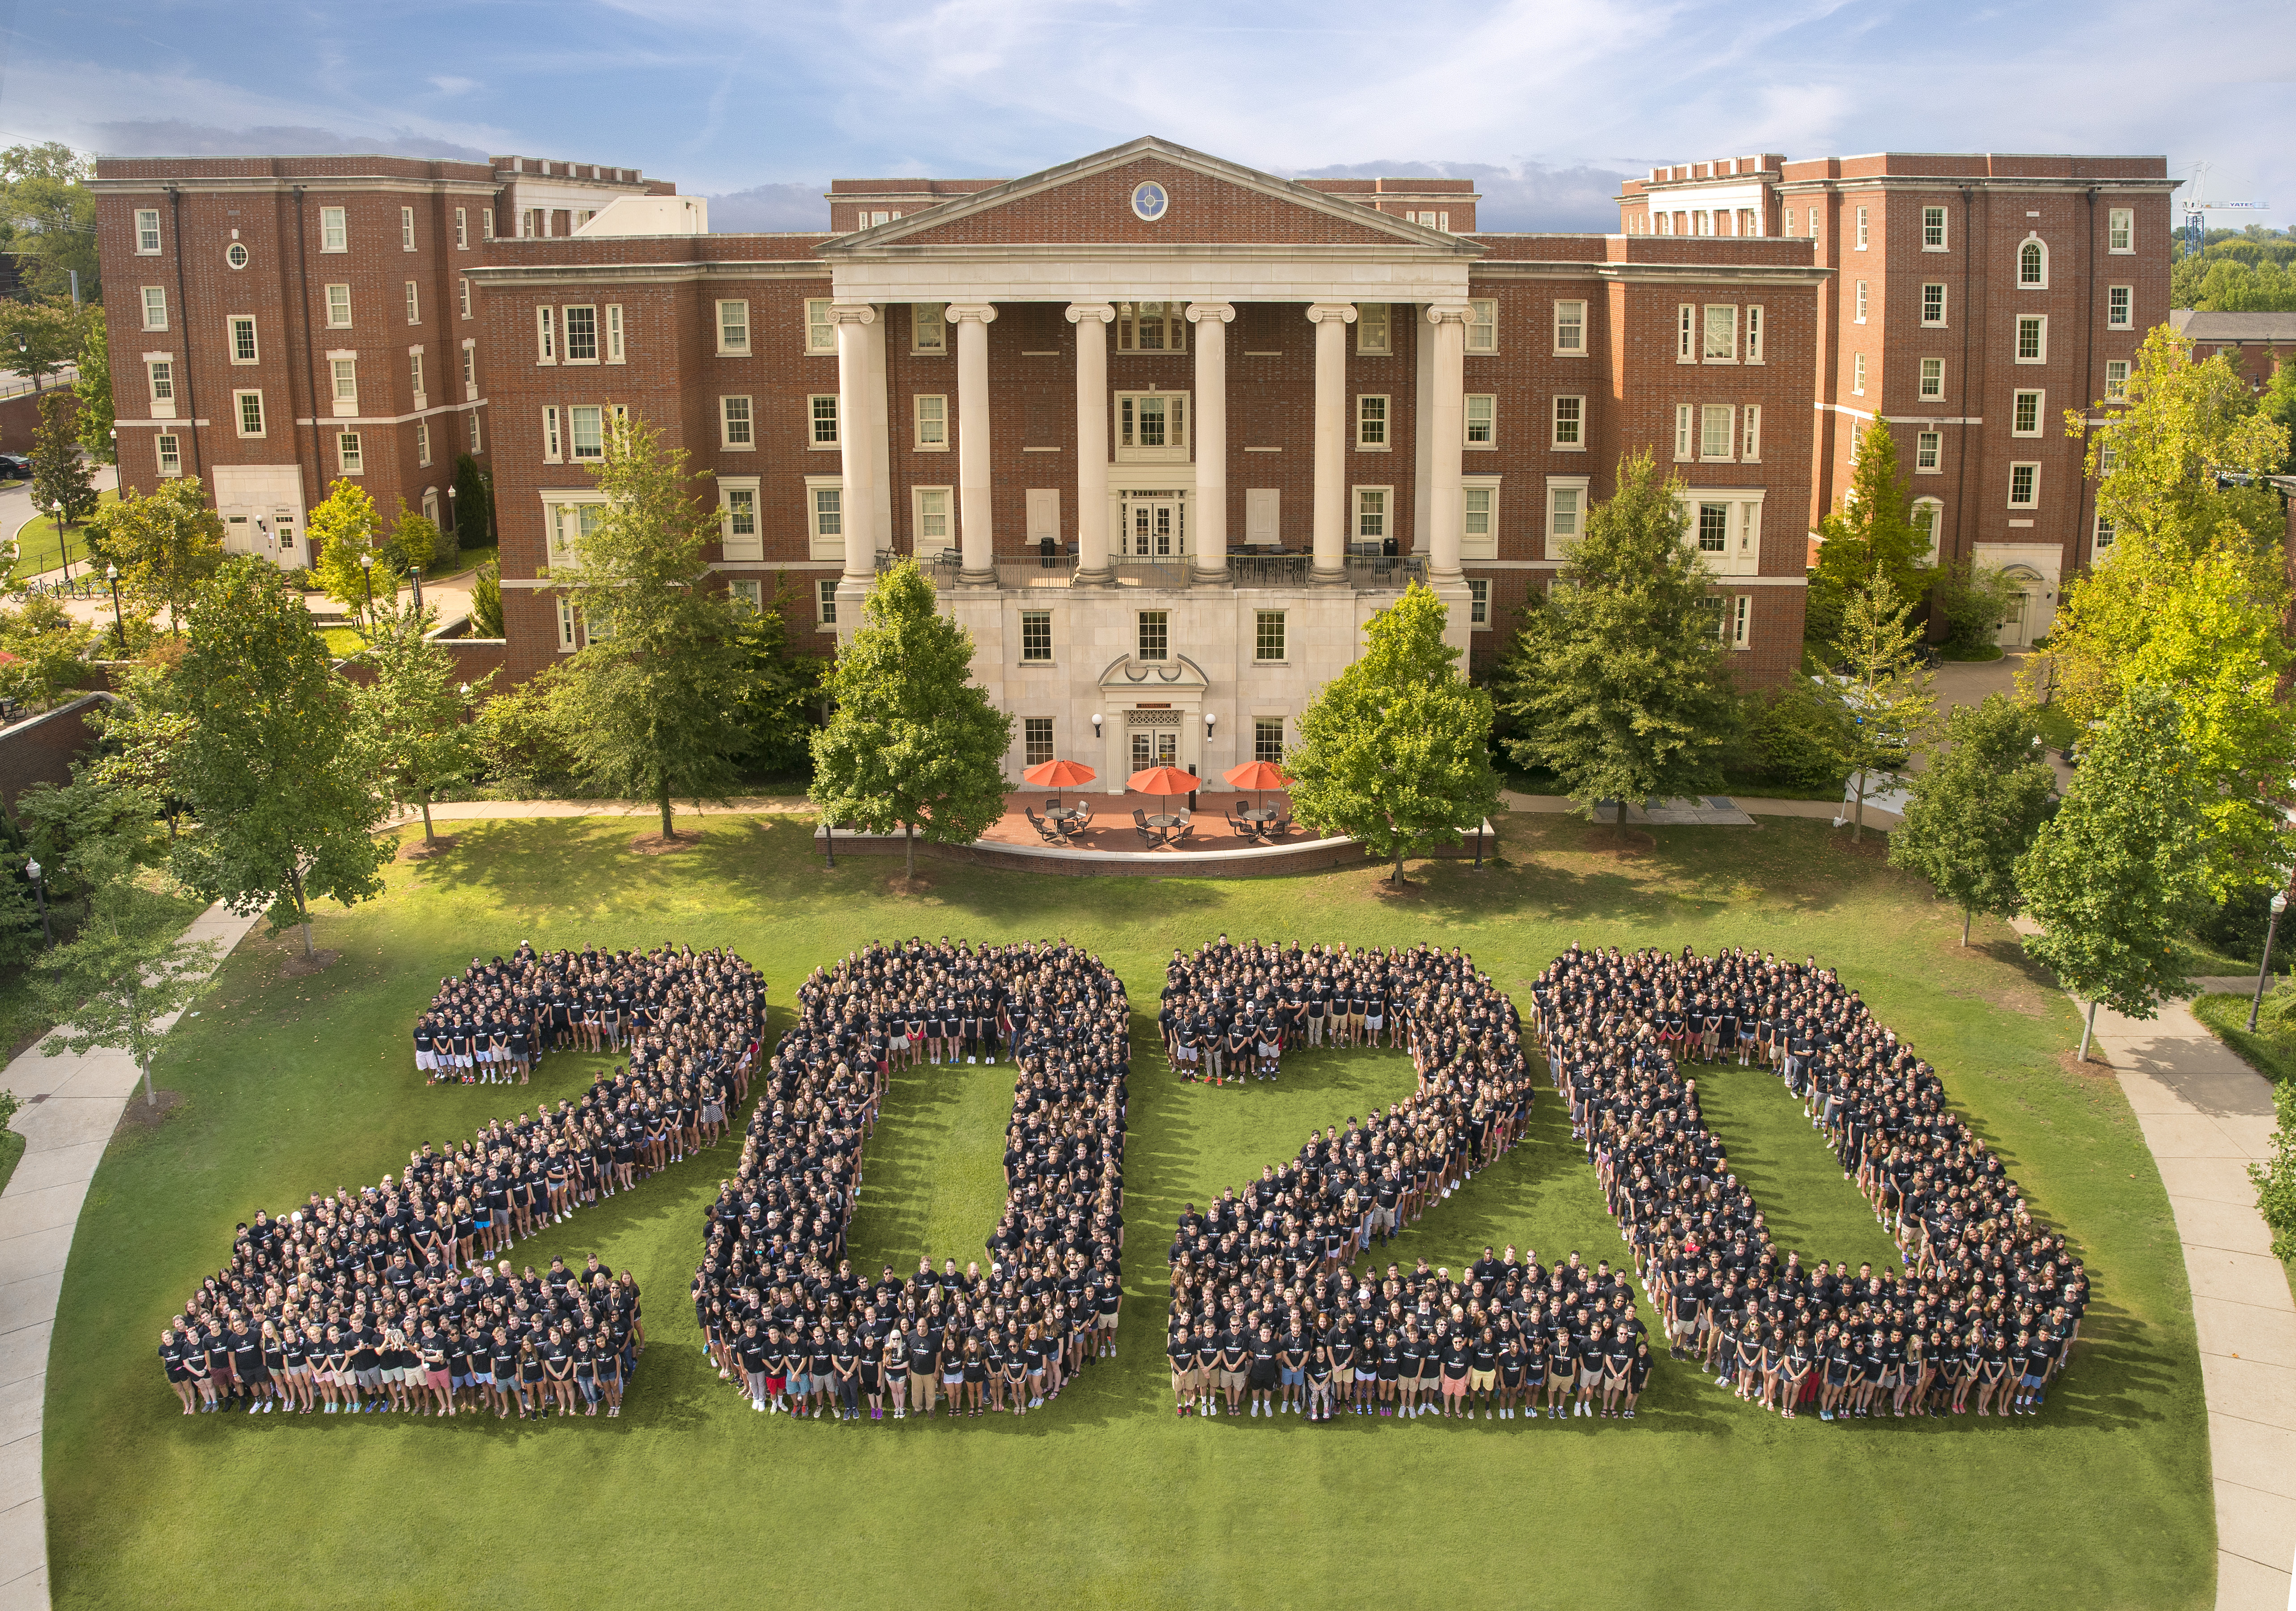 The Class of 2020 posed for a class photo as first-year students on The Martha Rivers Ingram Commons in August 2016. (Vanderbilt University)